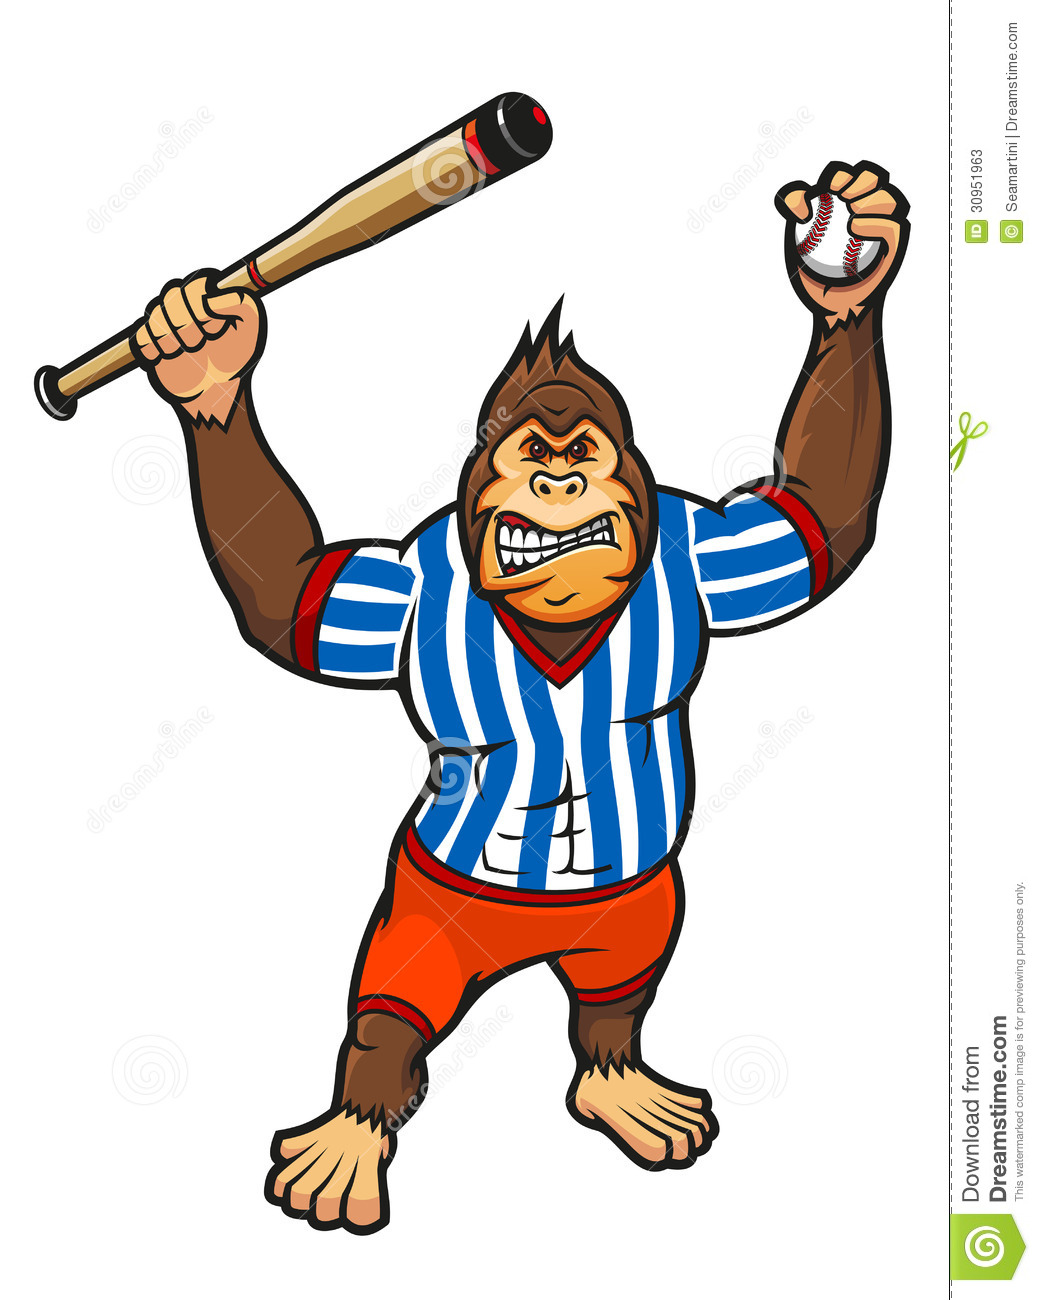 About Baseball Monkey Get everything you need for baseball, fastpitch softball, slowpitch softball and umpire needs, from youth to adult. We sell all the top brands like Nike, Rawlings, Wilson, Demarini, Reebok, Mizuno, Louisville Slugger and more!